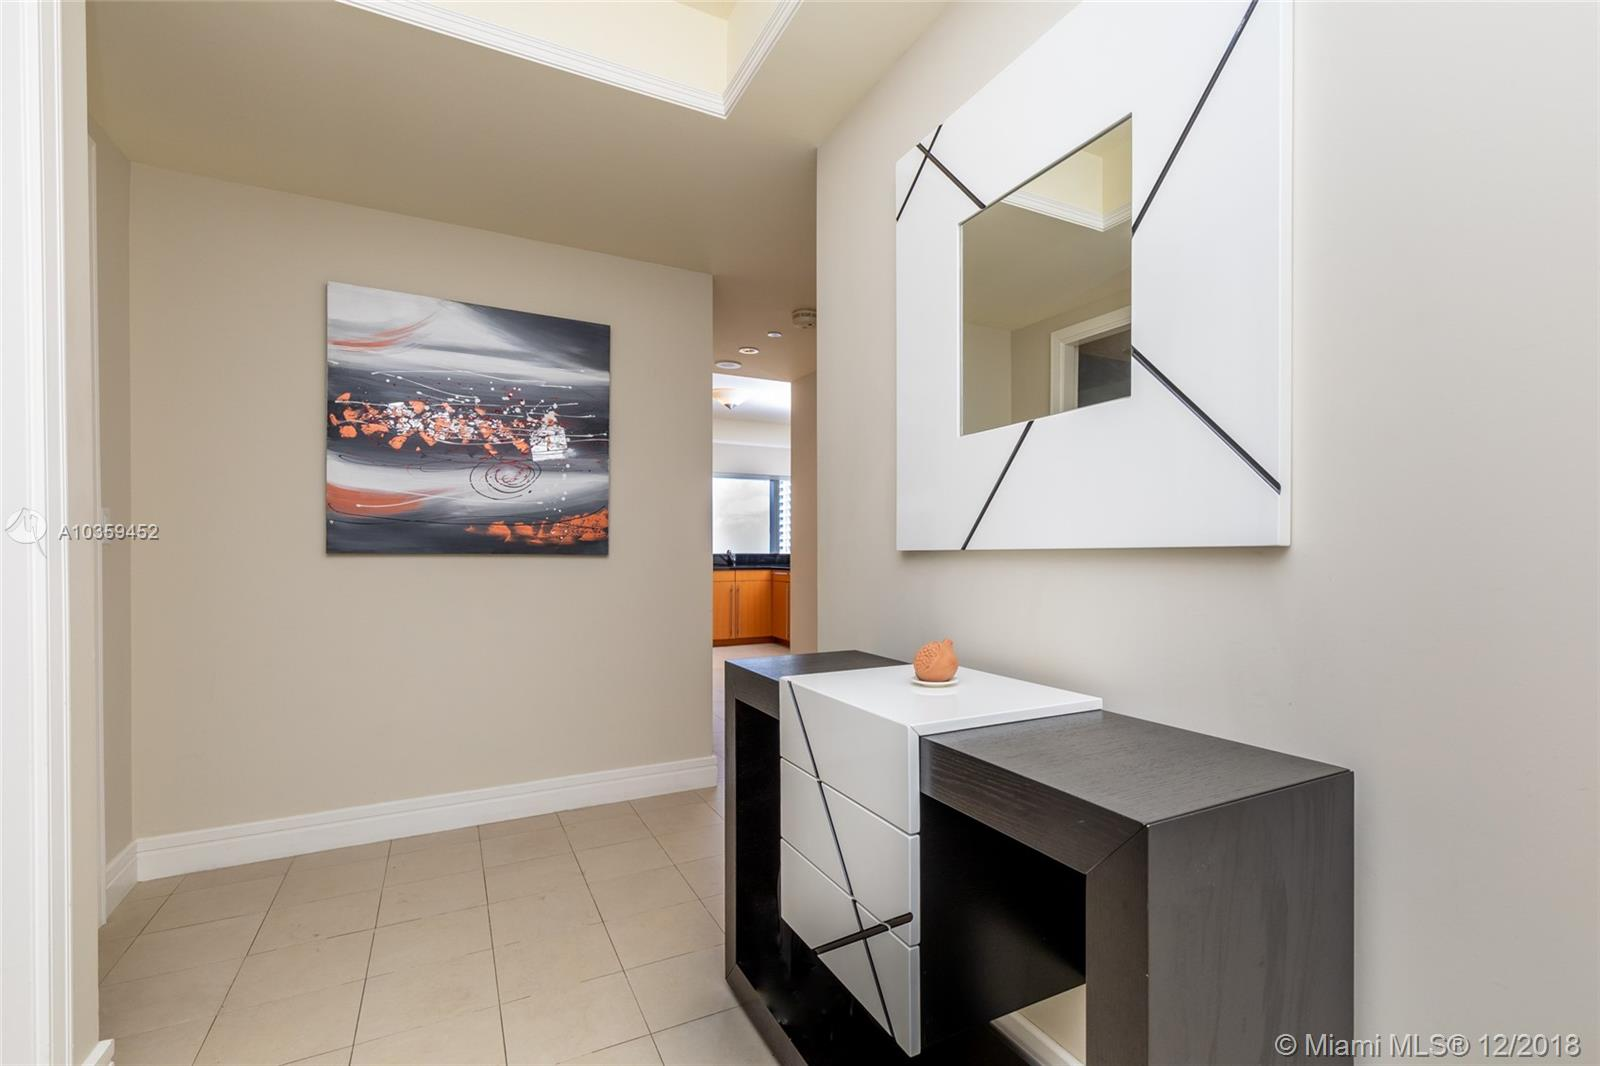 Image 1 For 1435 Brickell Ave  3112